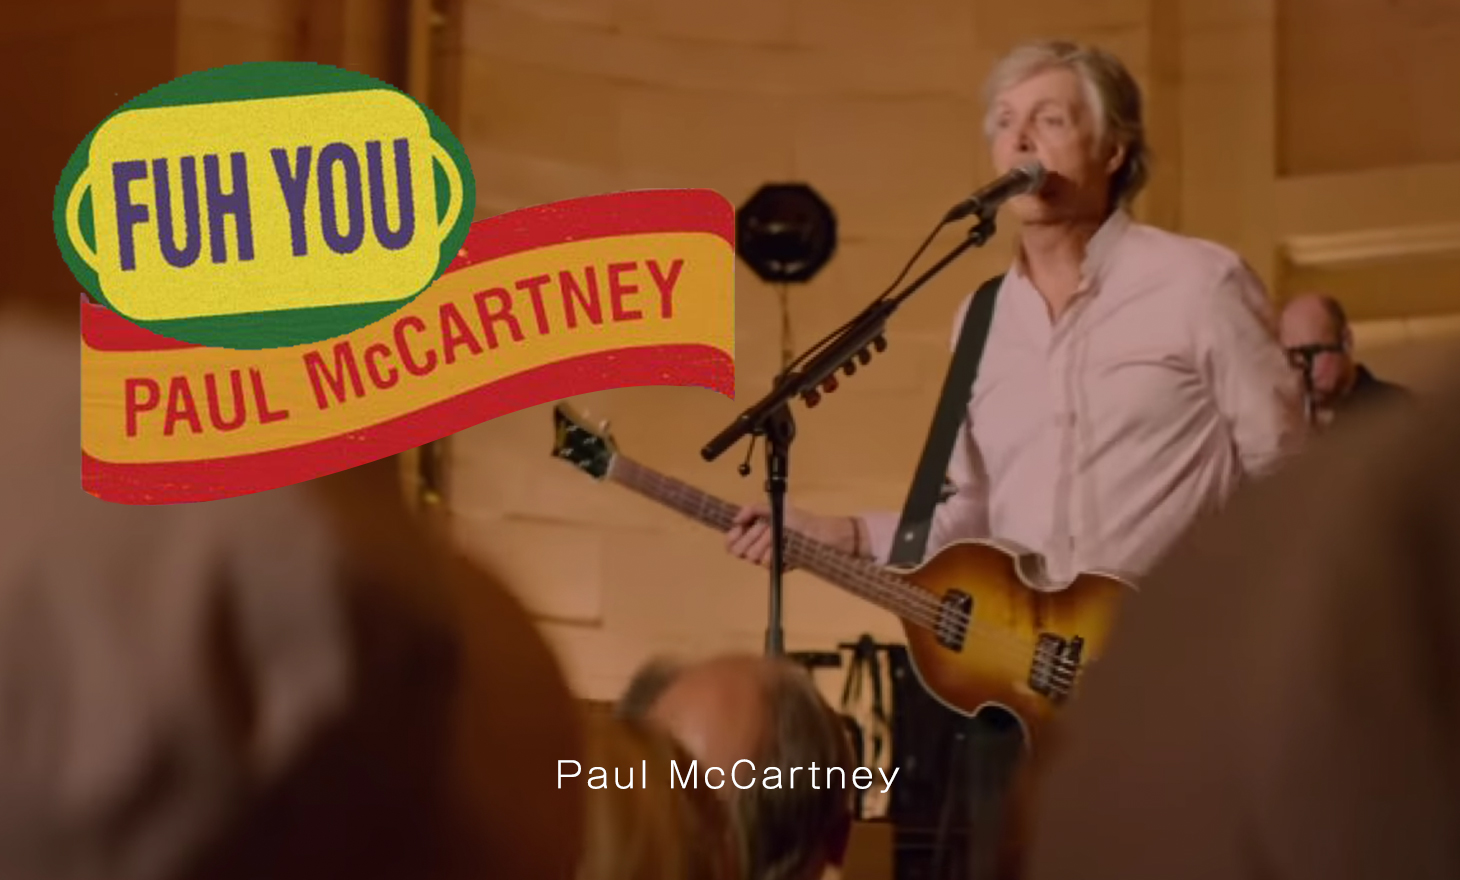 Paul McCartney : Fuh You